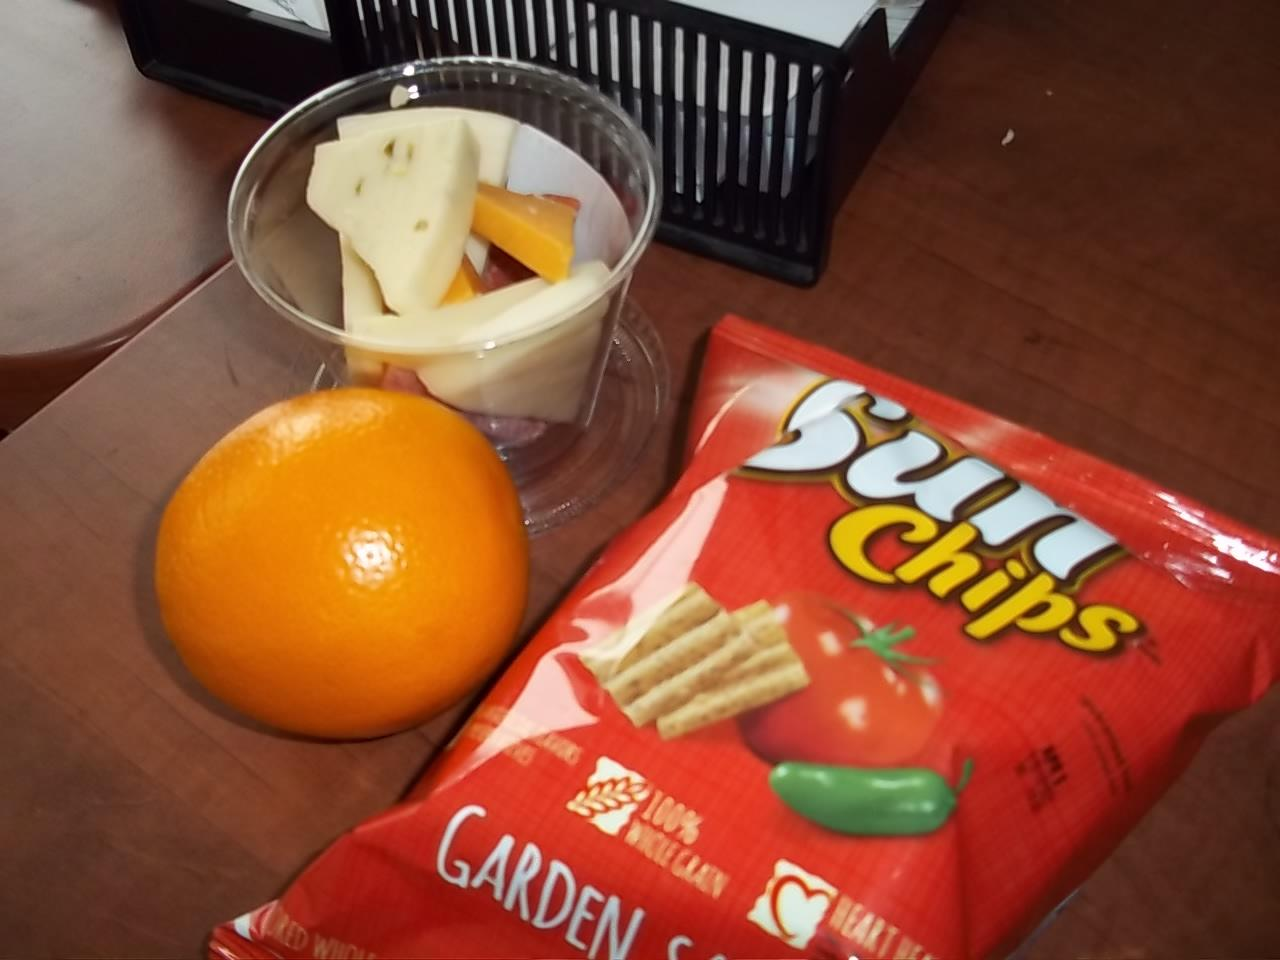 How to snack healthy on campus